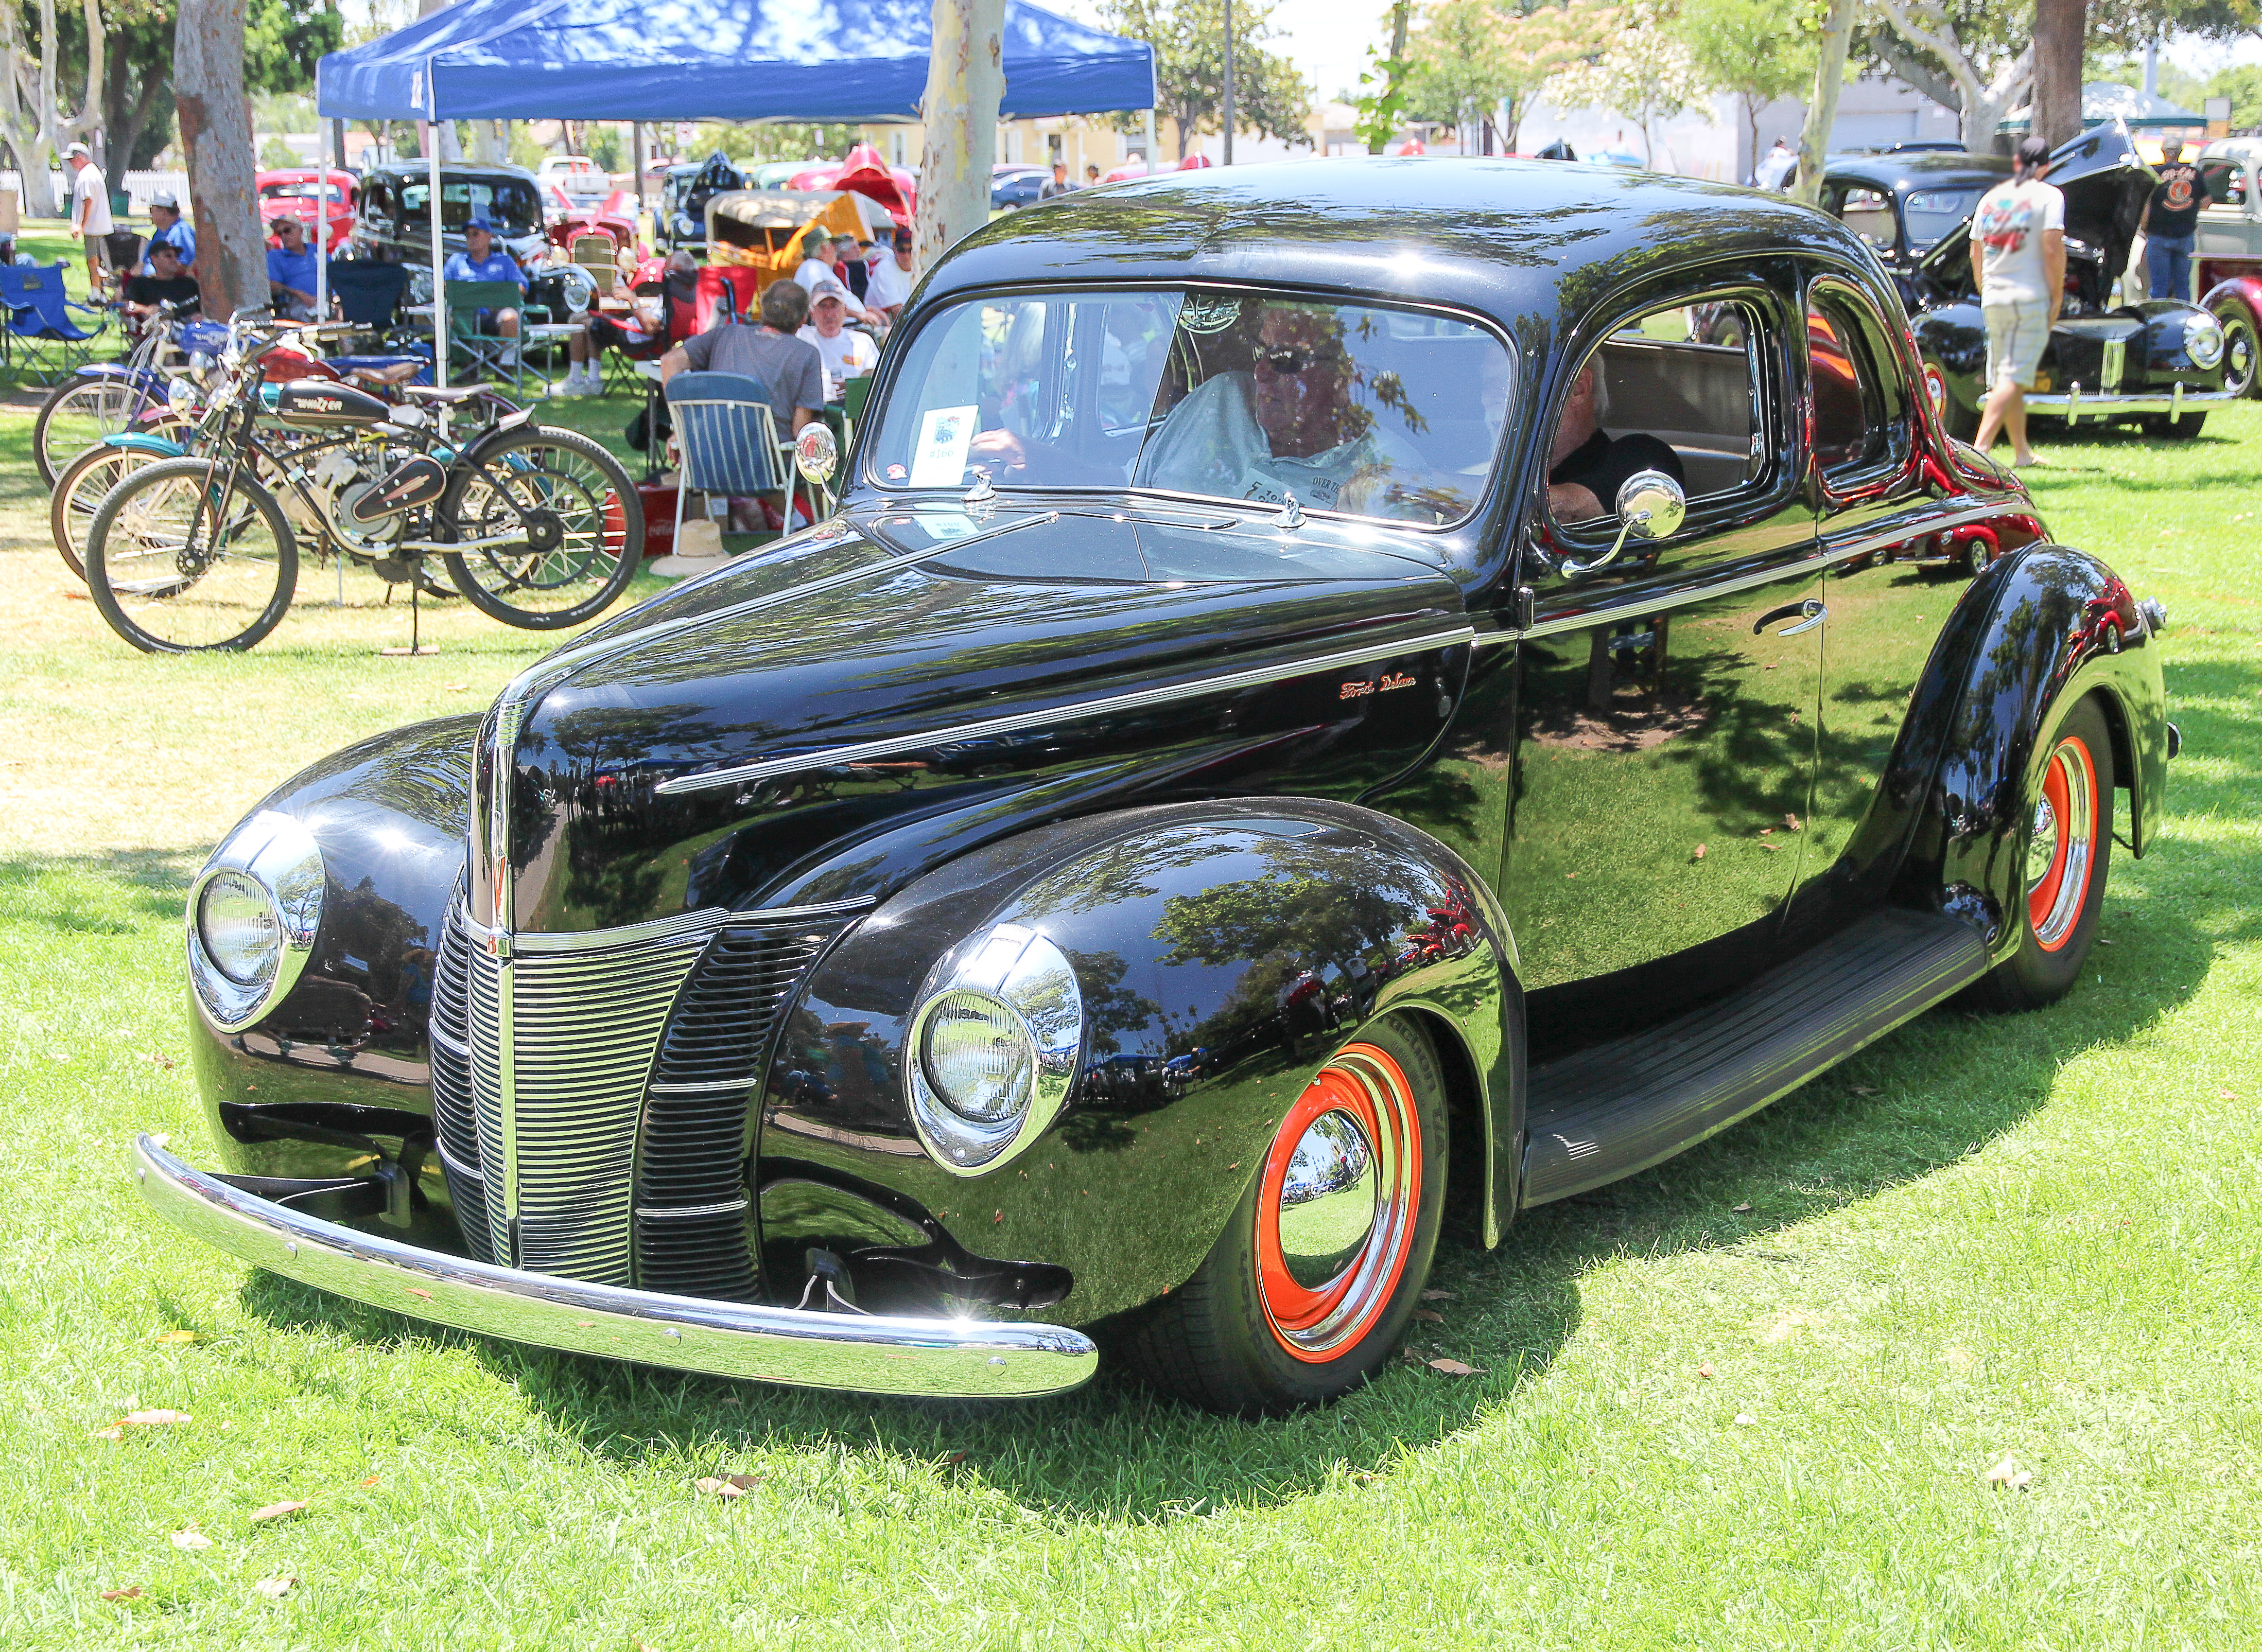 Ford Day at Cars in the Park   The Bridgetown Blog